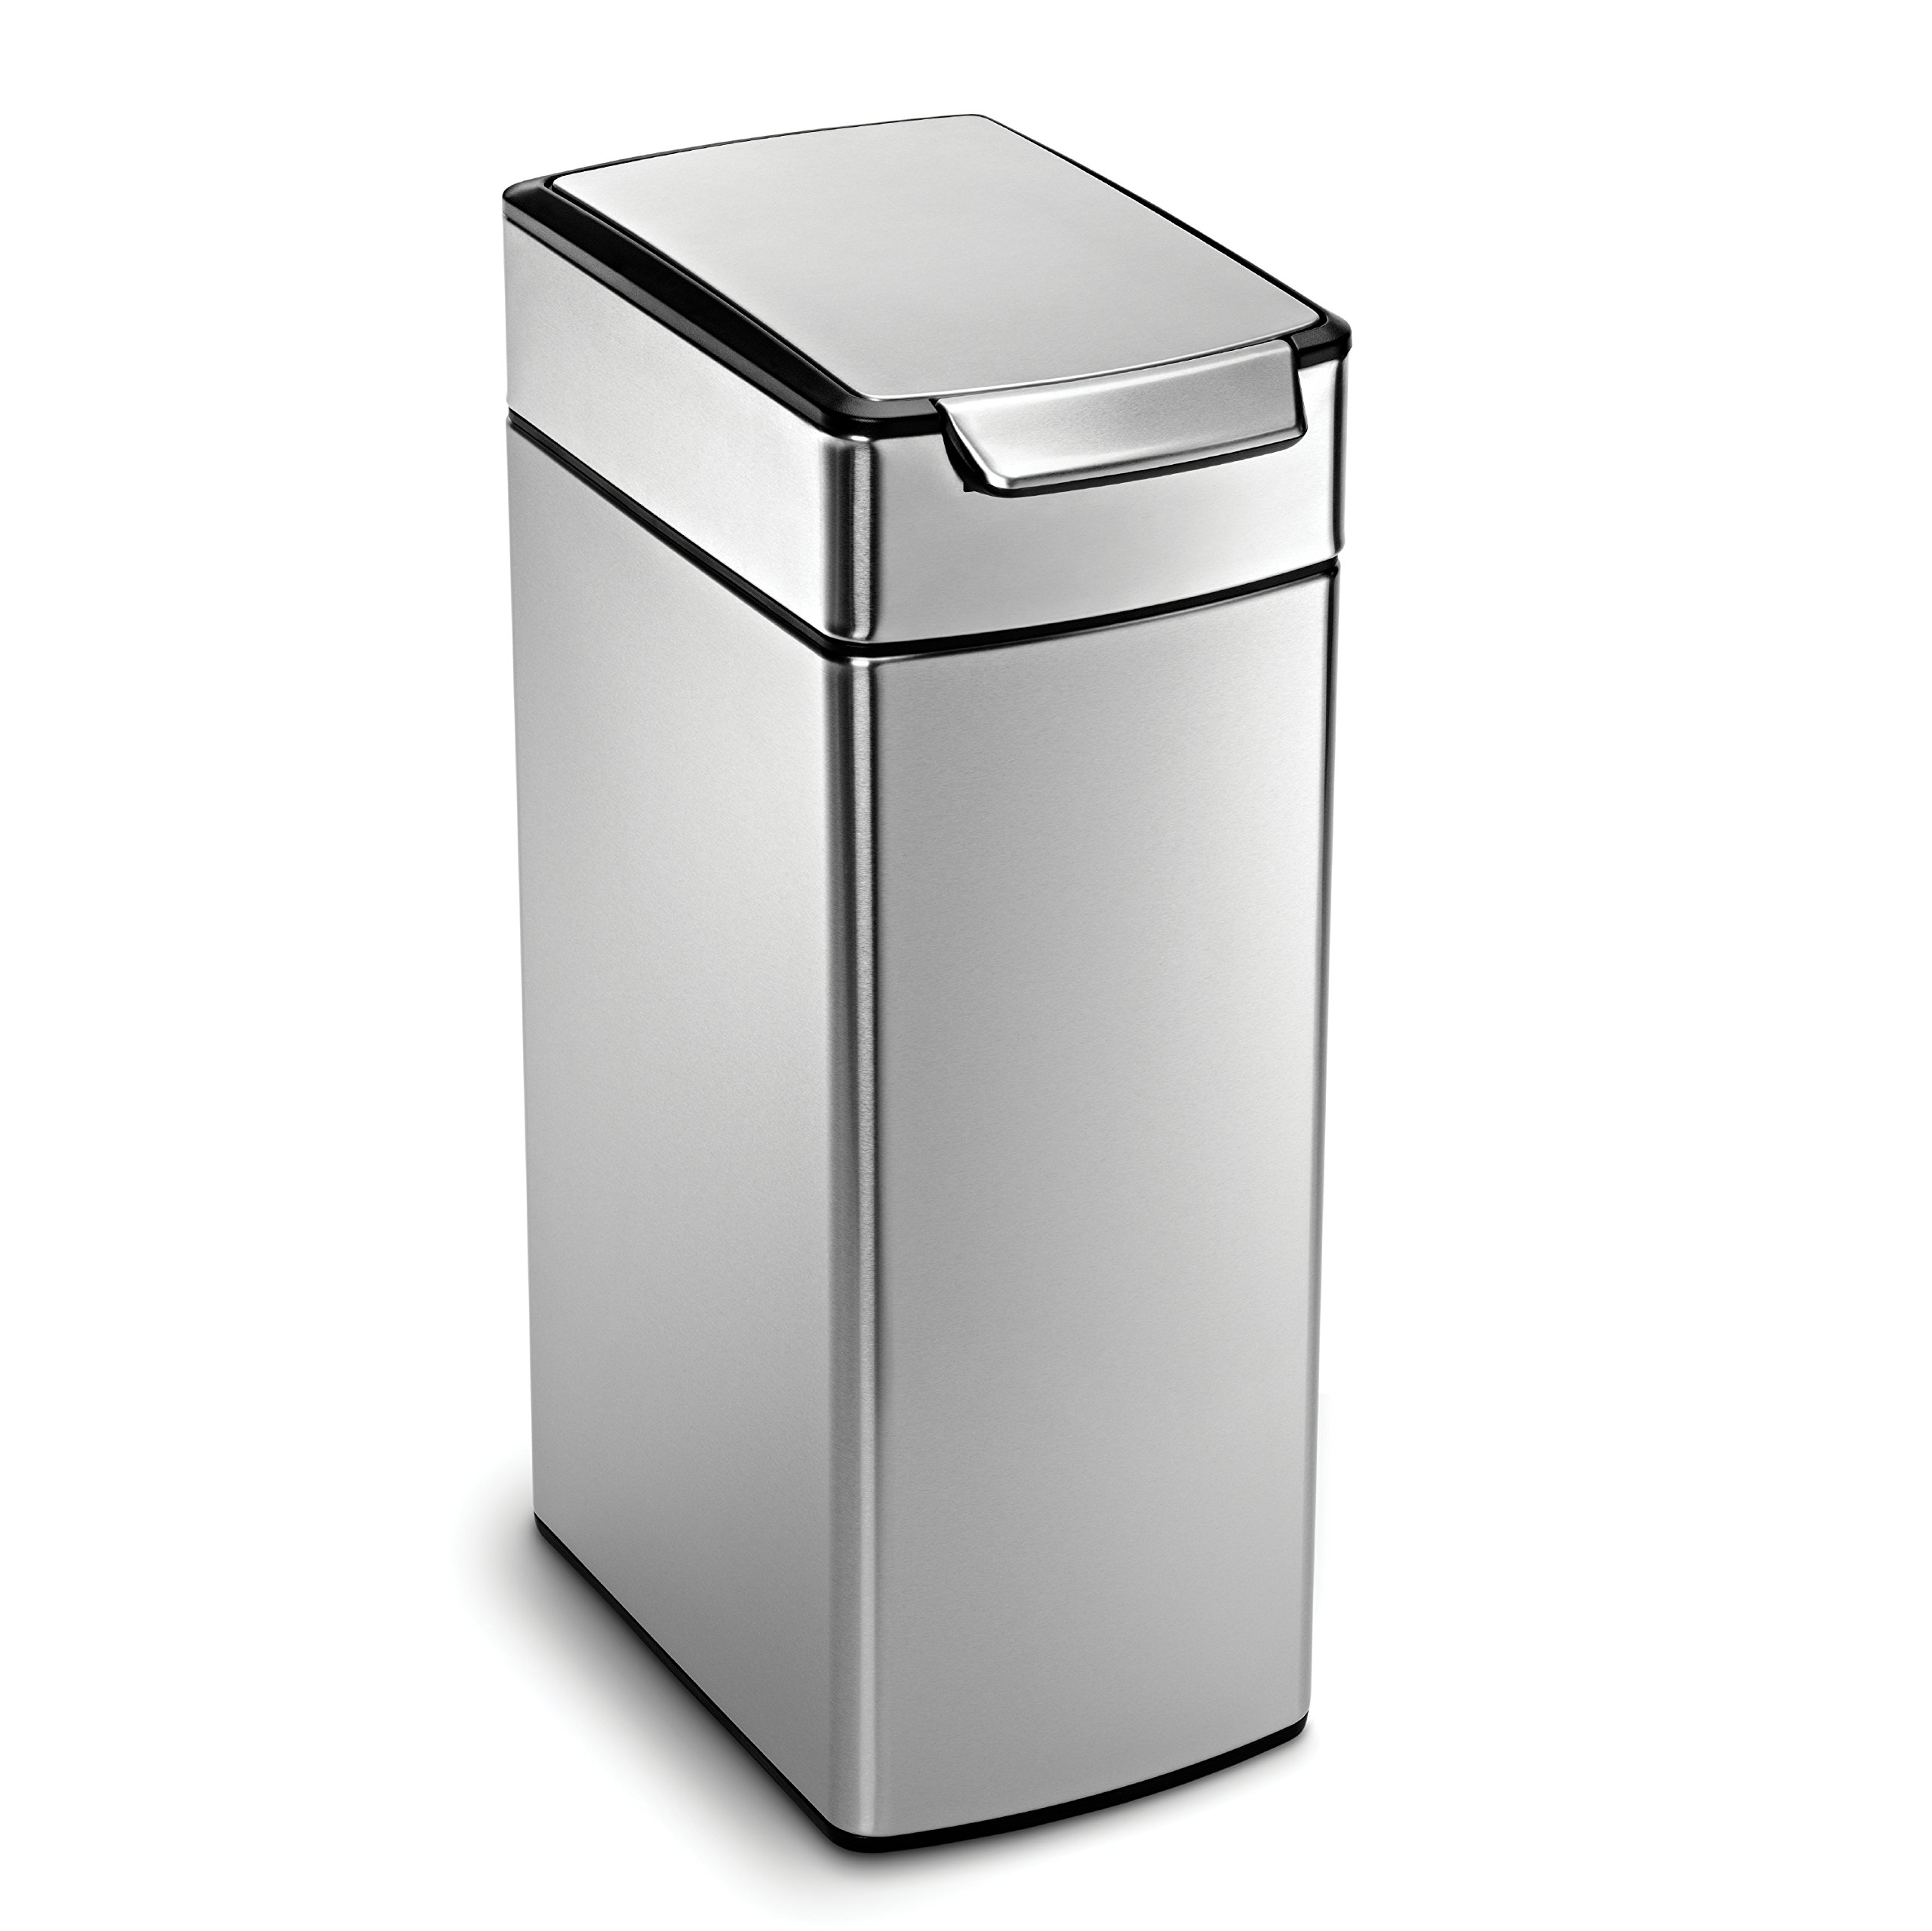 simplehuman 40 Liter / 10.6 Gallon Stainless Steel Slim Touch-Bar Kitchen Trash Can, Brushed Stainless Steel by simplehuman